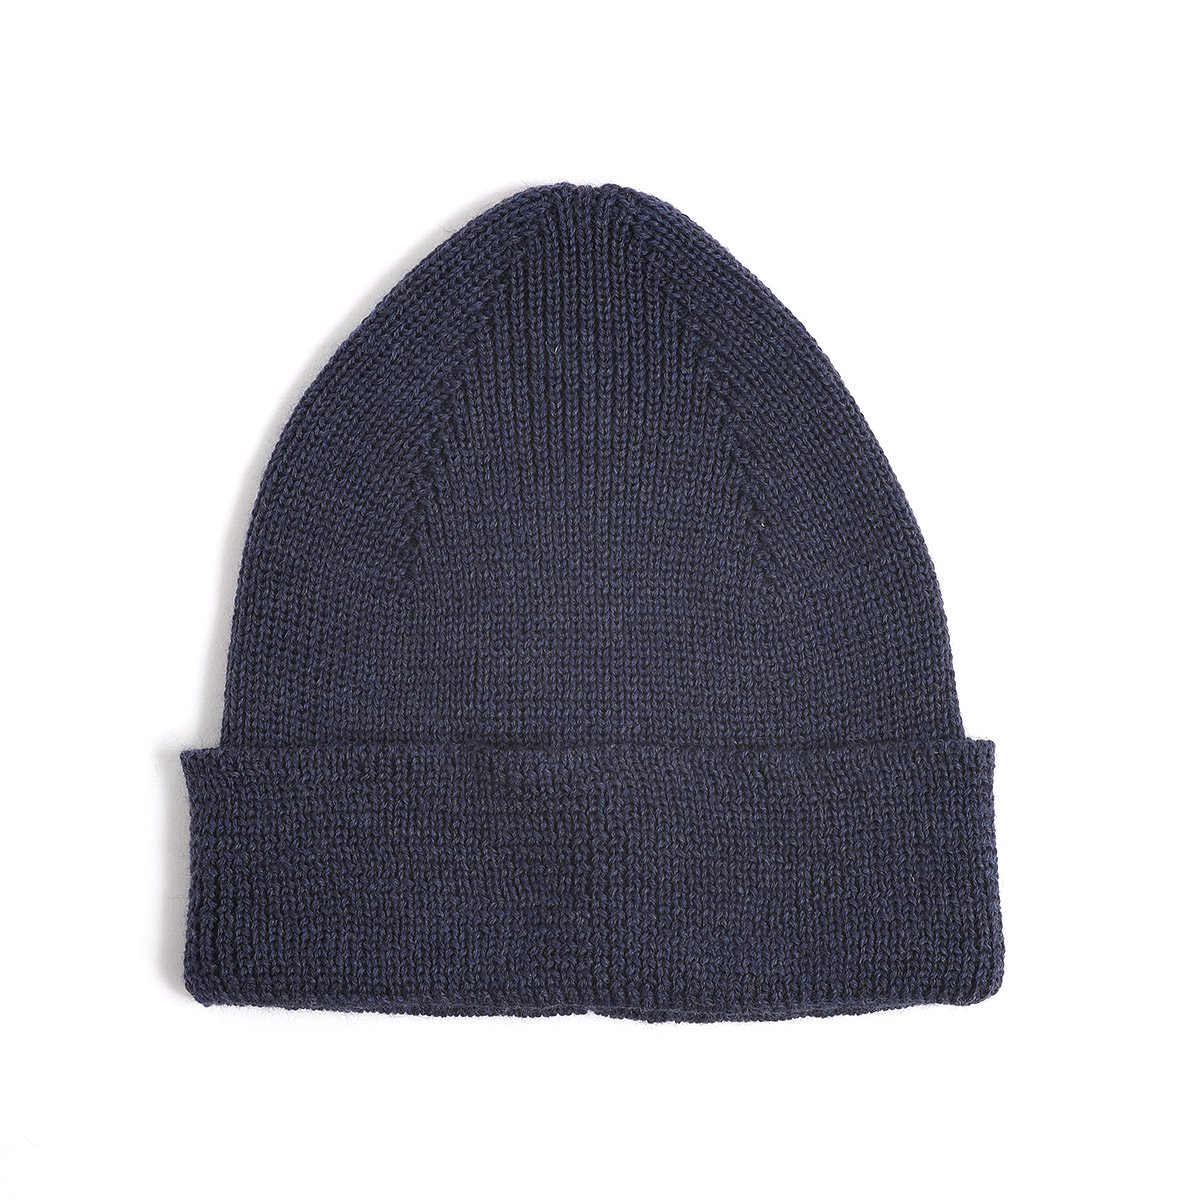 Rohw master product by Tesi KNIT CAP 詳細画像1